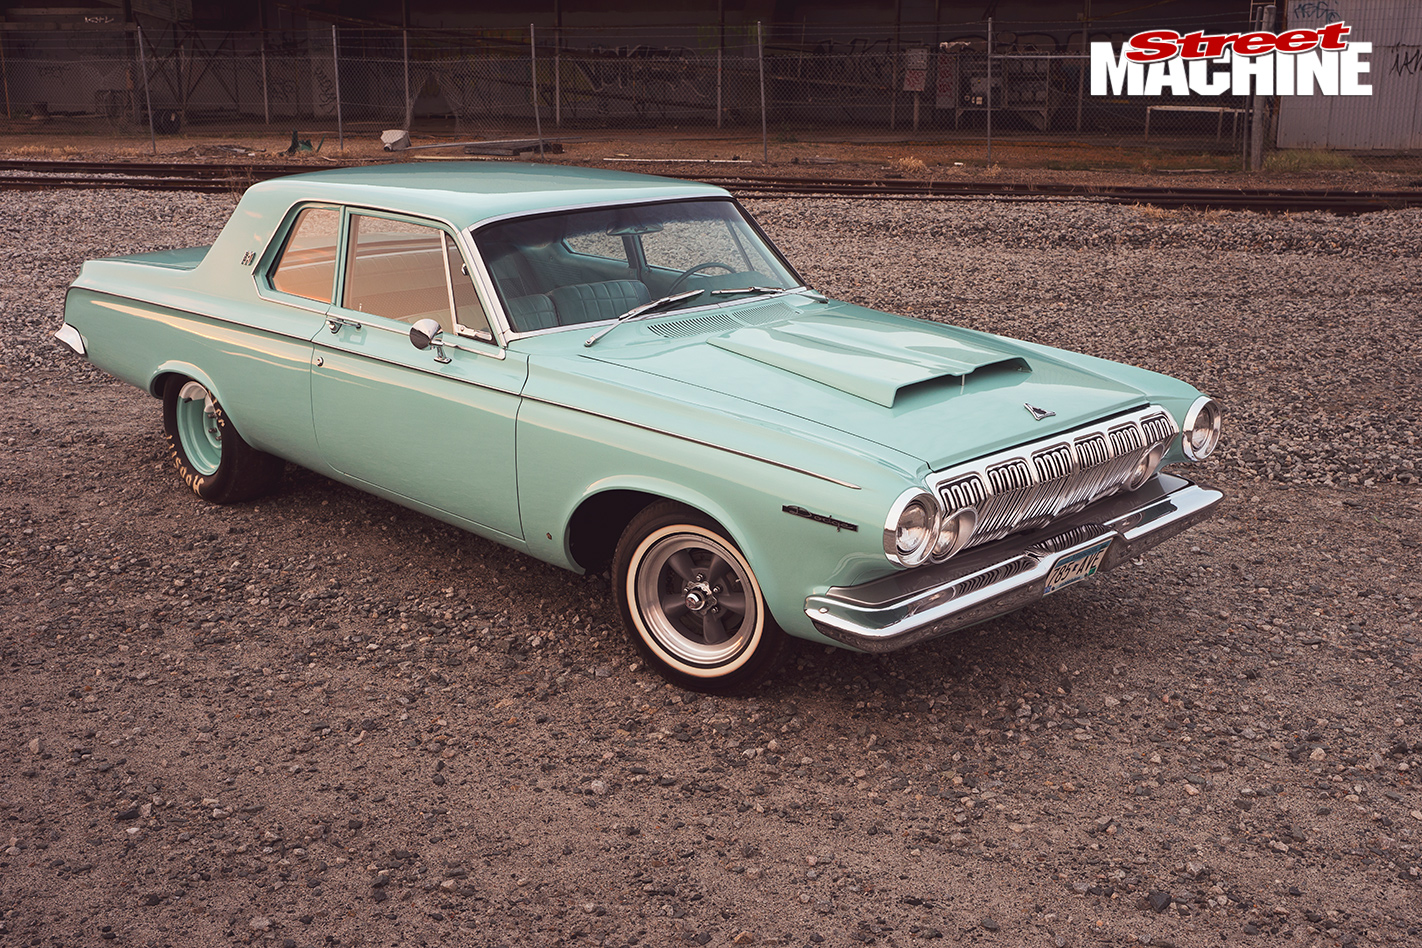 1963 Dodge Polara 330 Vs Ford Galaxie 500xl 4 Door Hardtop Front